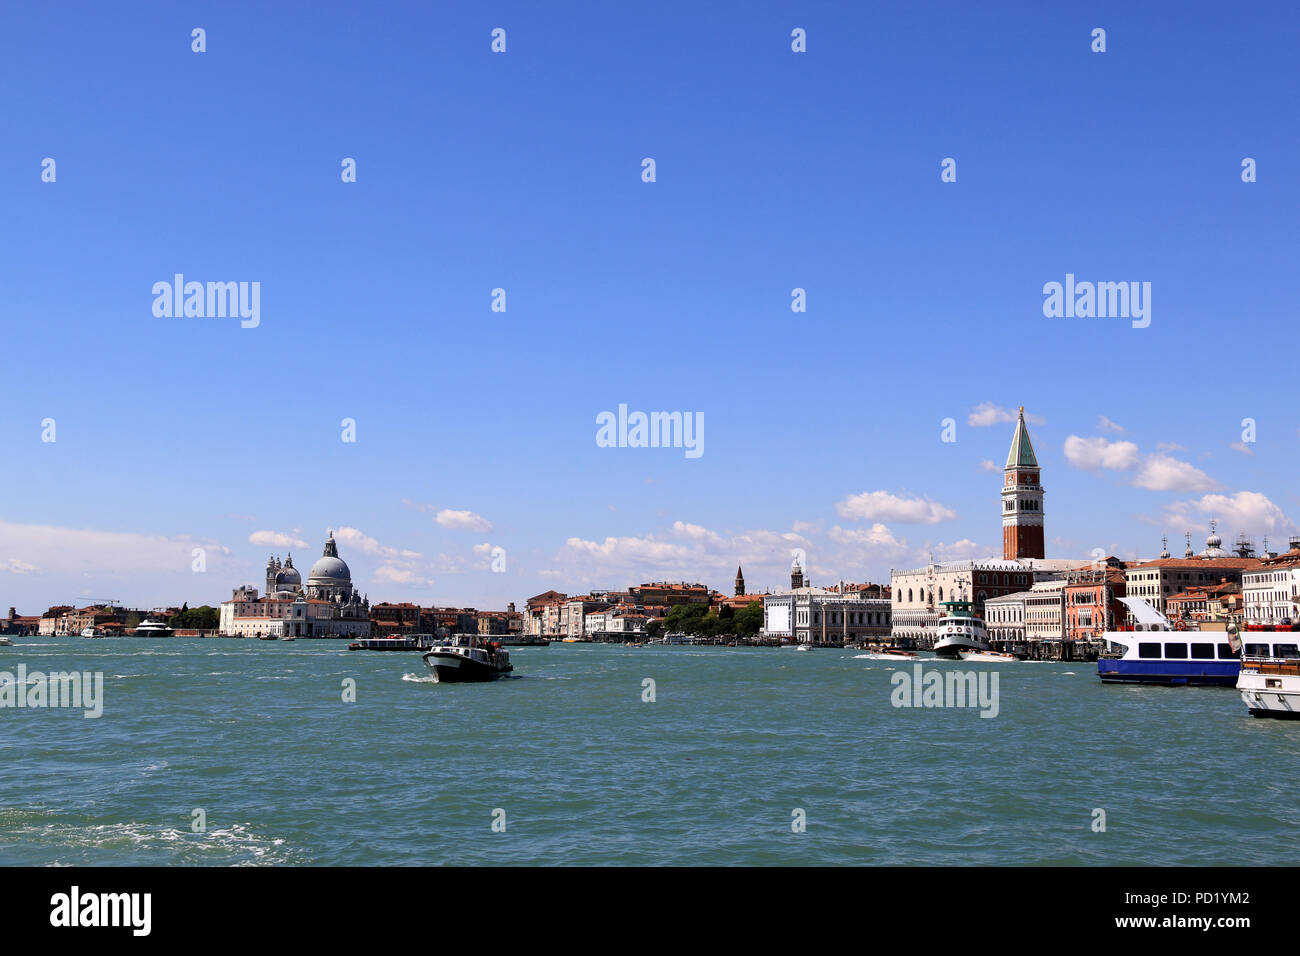 Basilica di Santa Maria della Salute, seen from the Riva degli Schiavoni, the southern Promenade in Venice, Italy Stock Photo